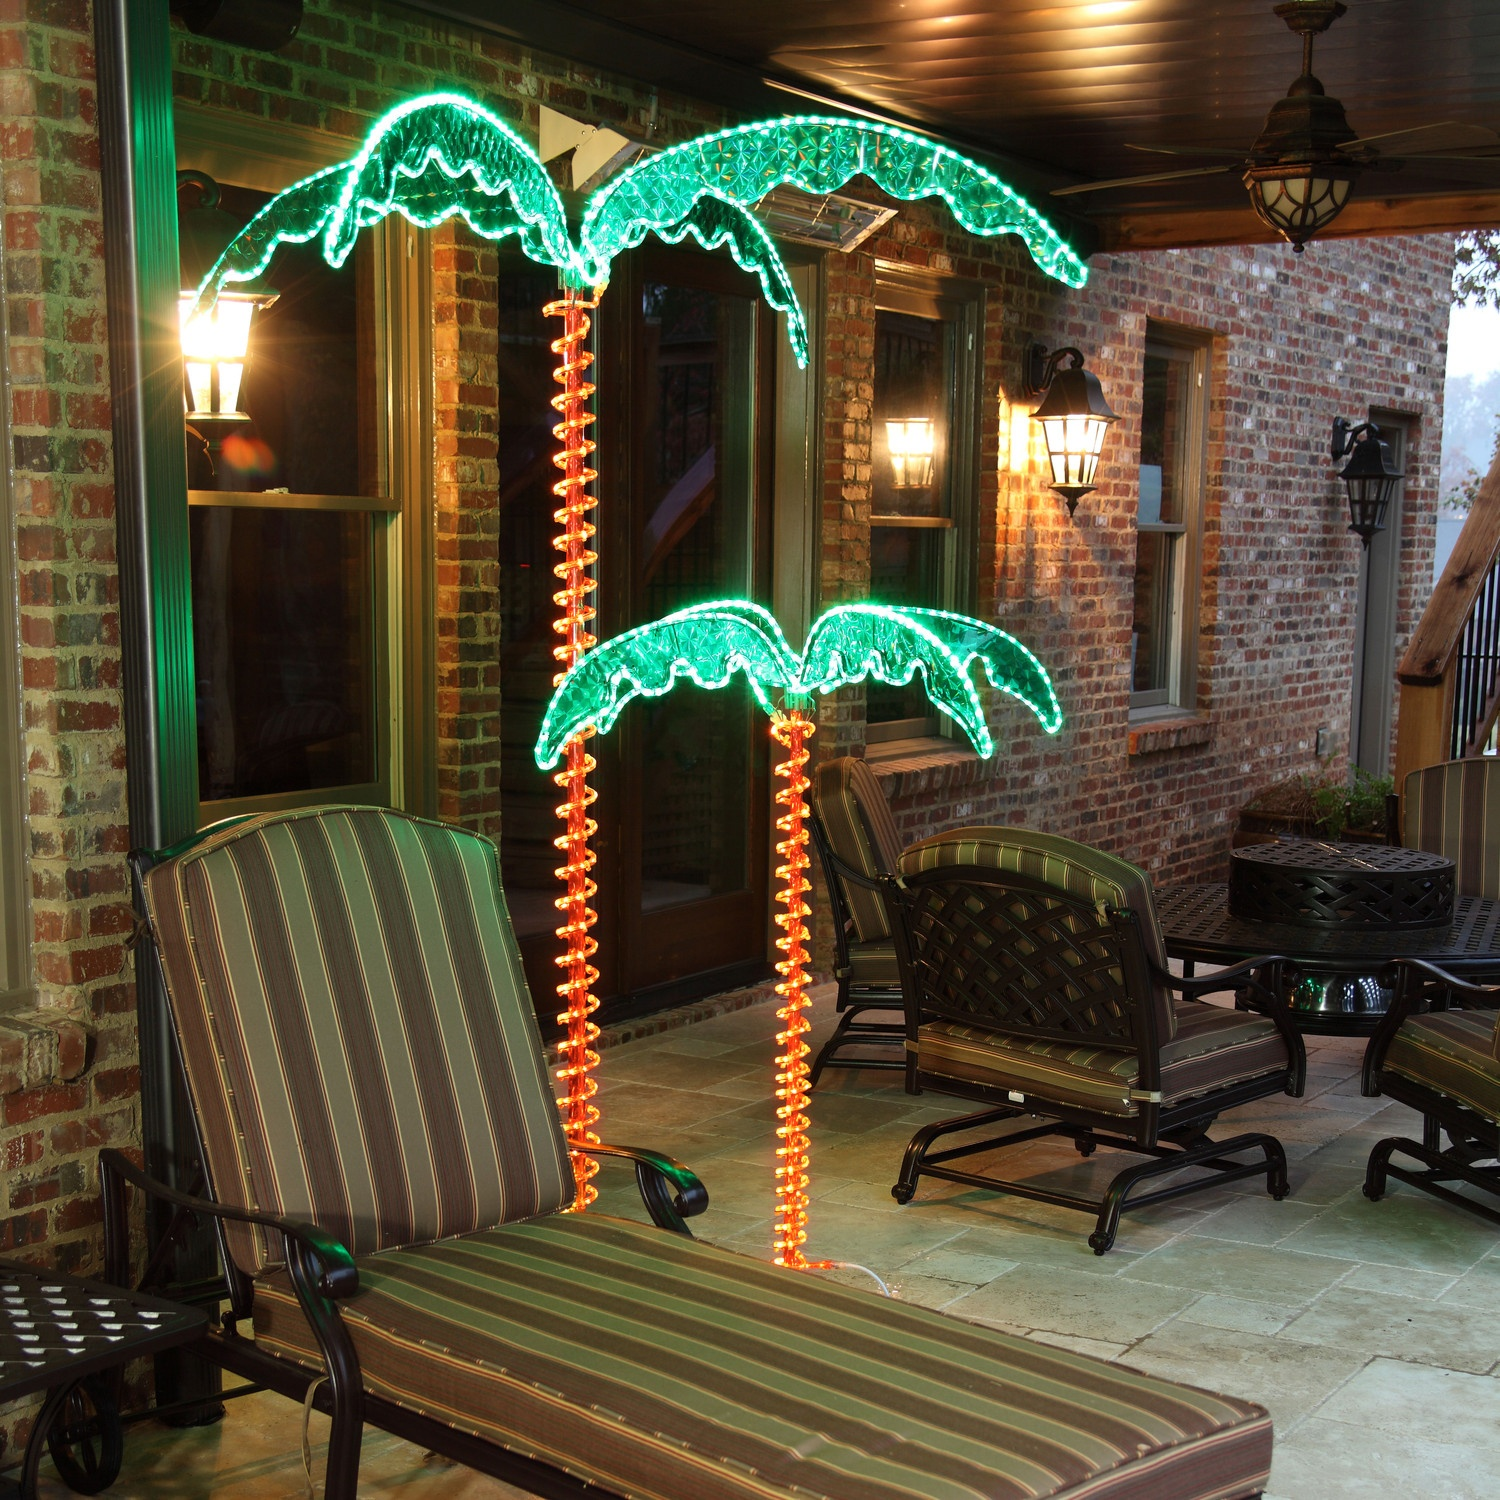 Deluxe Rope Light LED Lighted Palm Tree with Green Canopy - Yard Envy